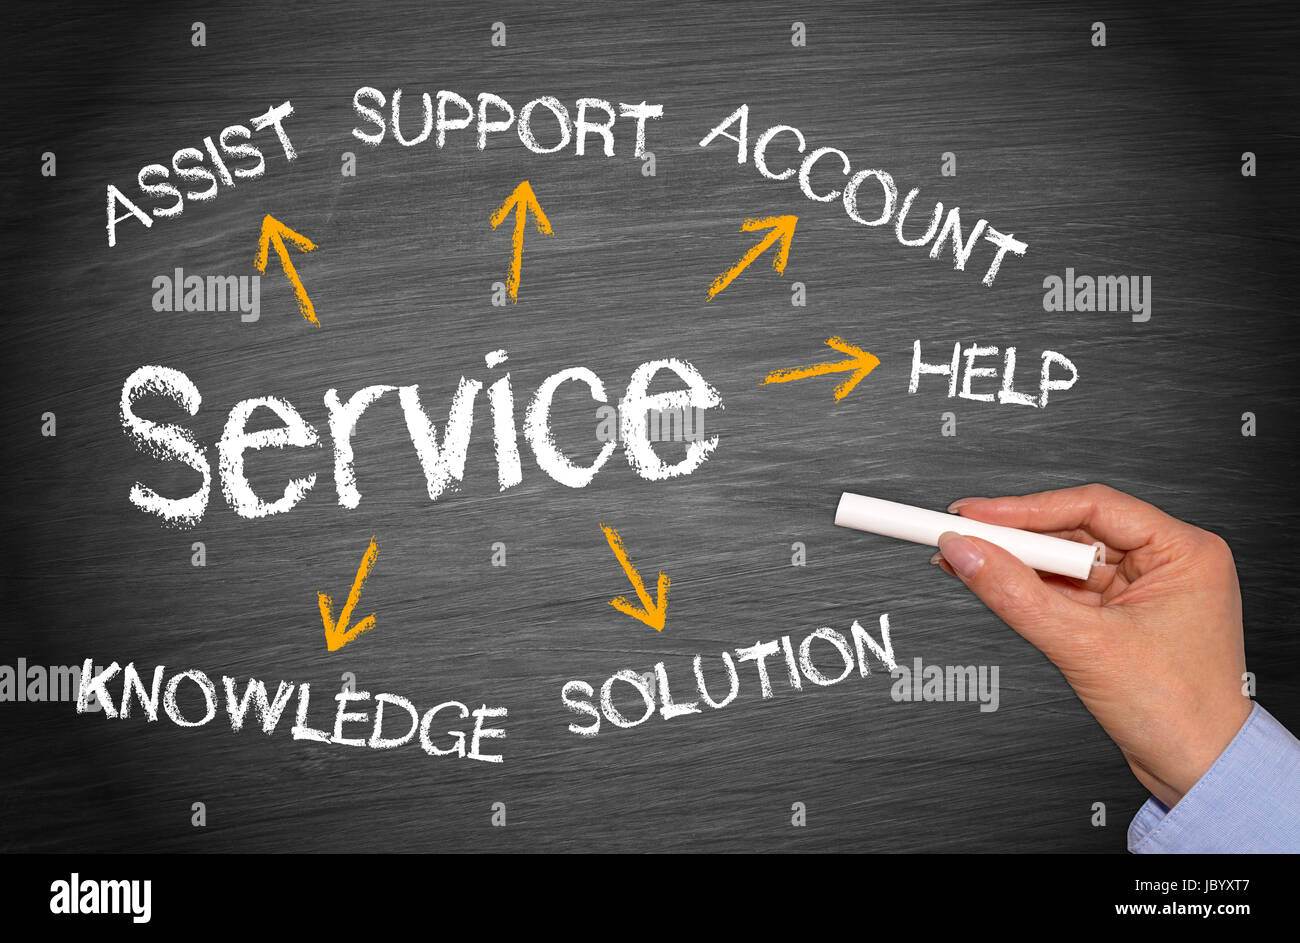 Service - Business Concept Stock Photo